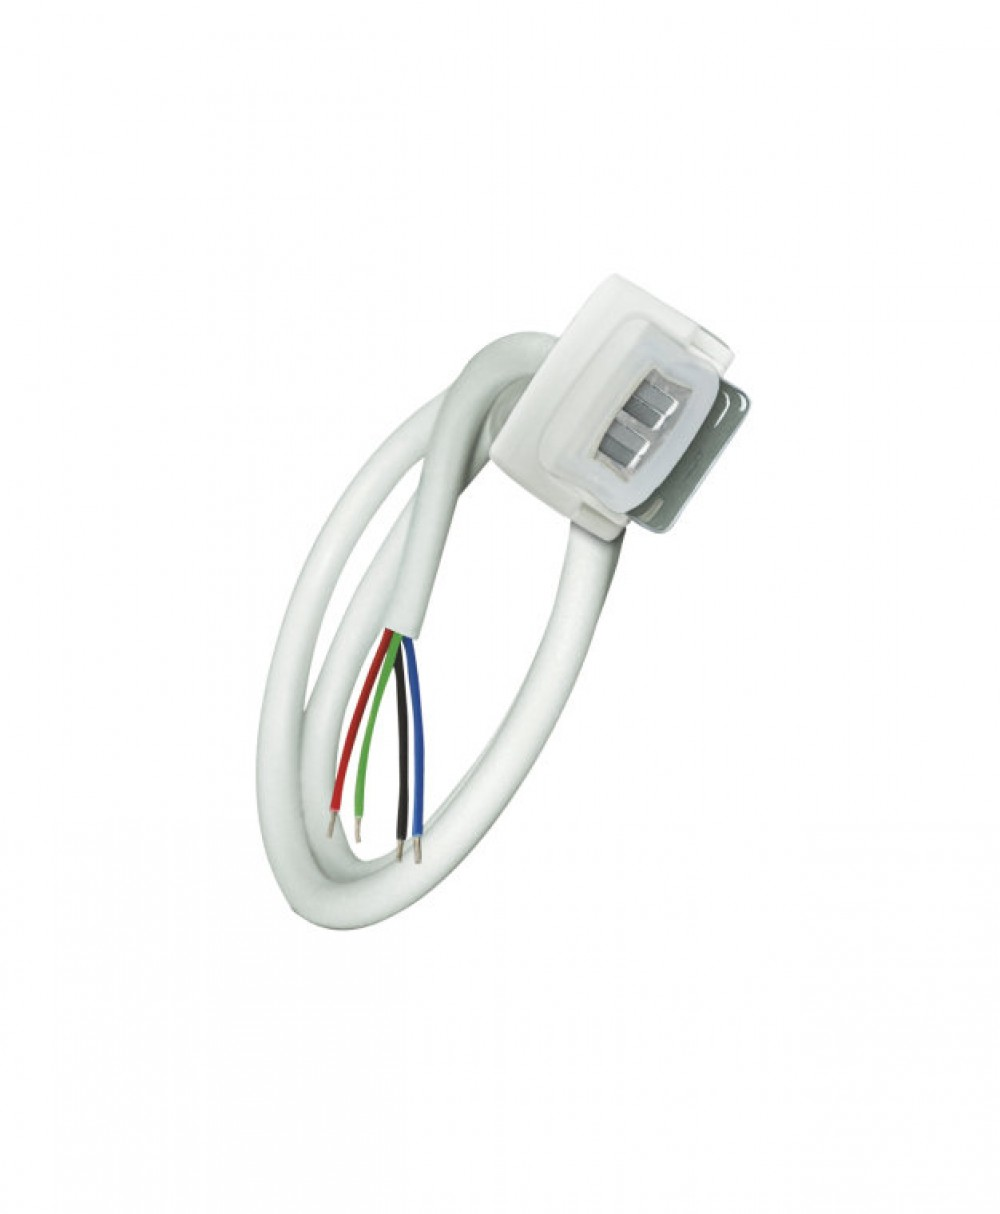 LINEARLIGHT COLORMIX FLEX PROTECT - LF -4PIN CONNECT PROTECT (5PCS)